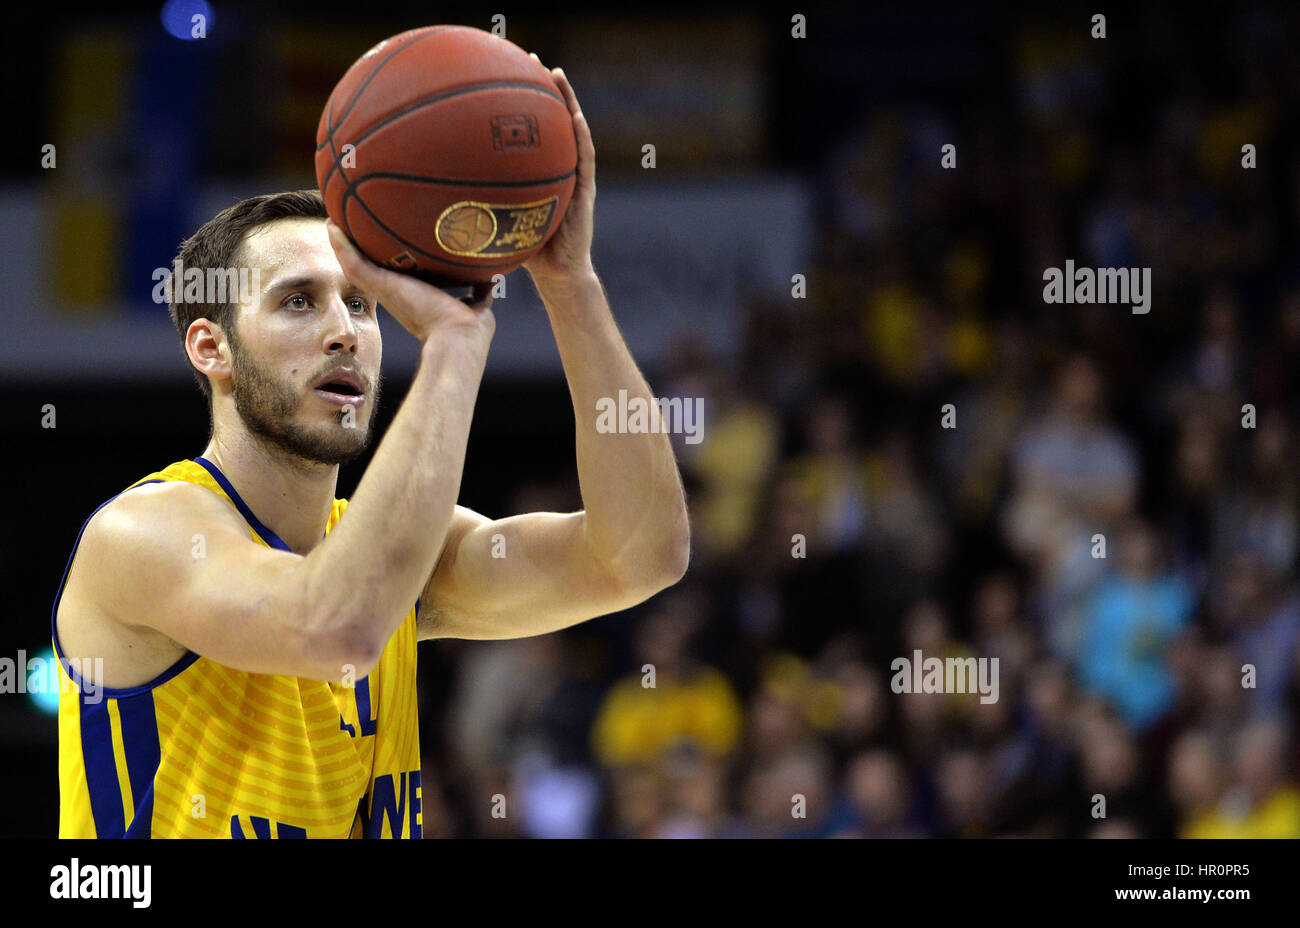 Oldenburg's Vladimir Mihailovic with a free throw during the game between EWE Baskets Oldenburg vs. ratiopharm - Stock Image